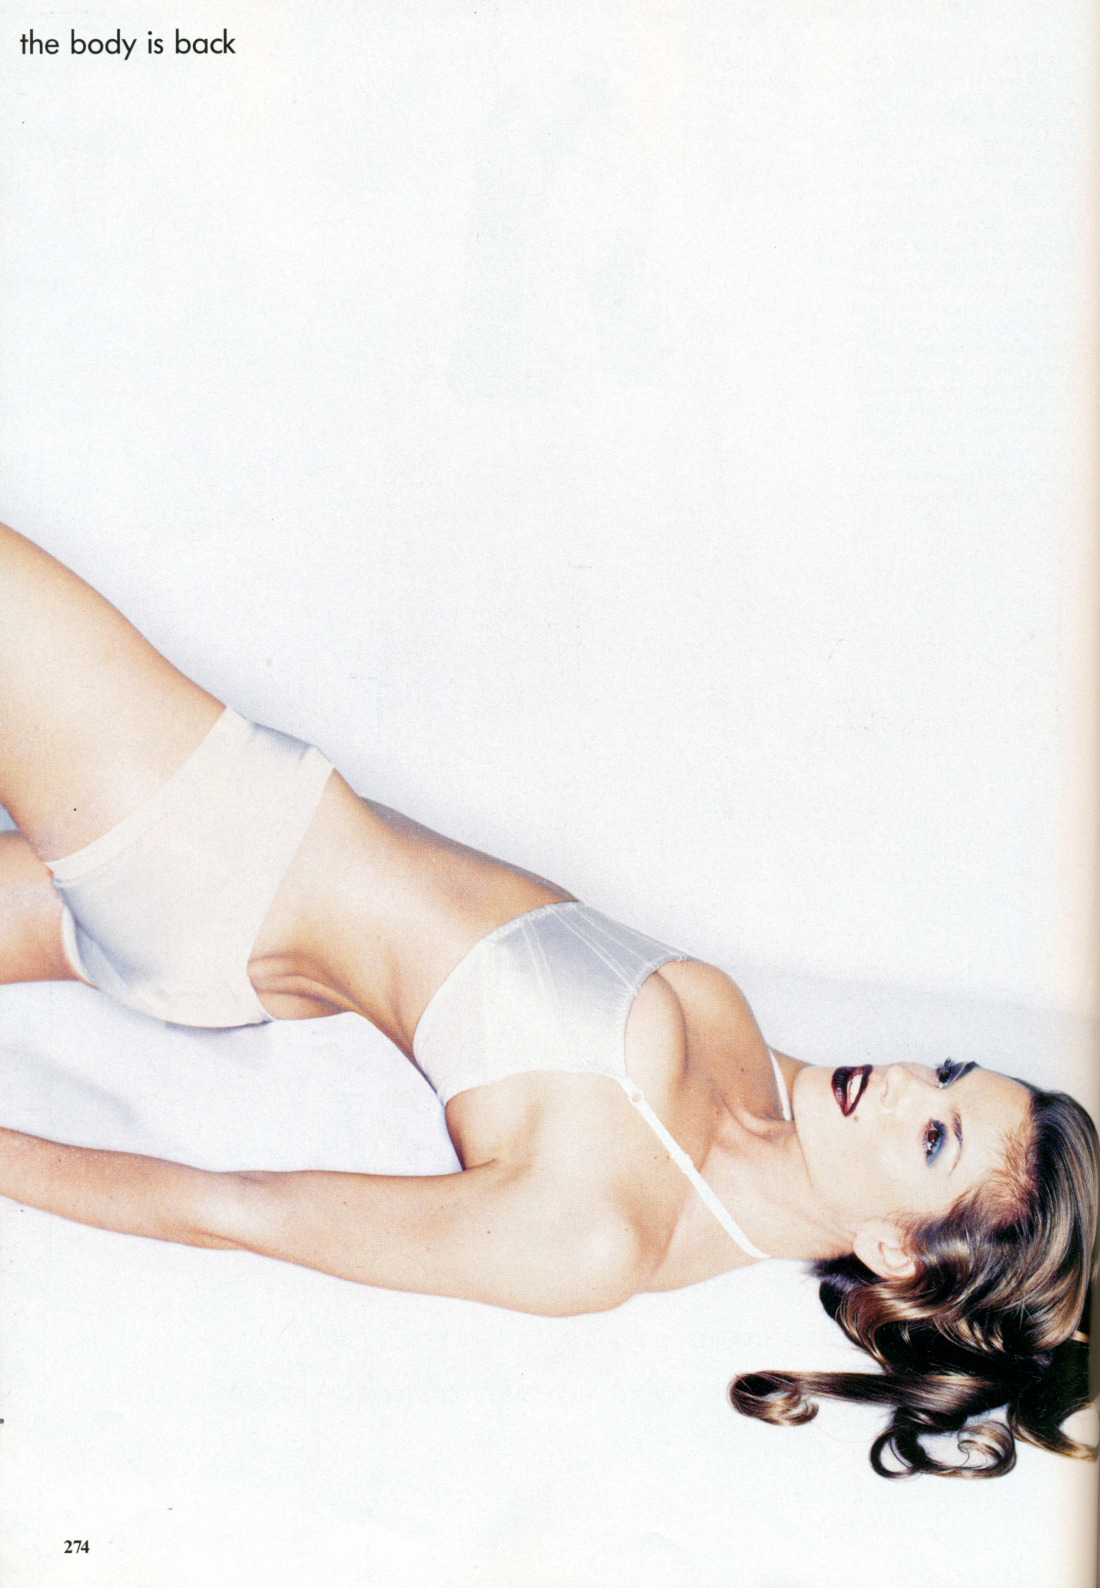 "80s-90s-supermodels:  ""The Body Is Back"", Vogue US, December 1994Photographer : Nick KnightModel : Cindy CrawfordMakeup : Linda Cantello for AtlantisHair : Julien d'Is for Atlantis"